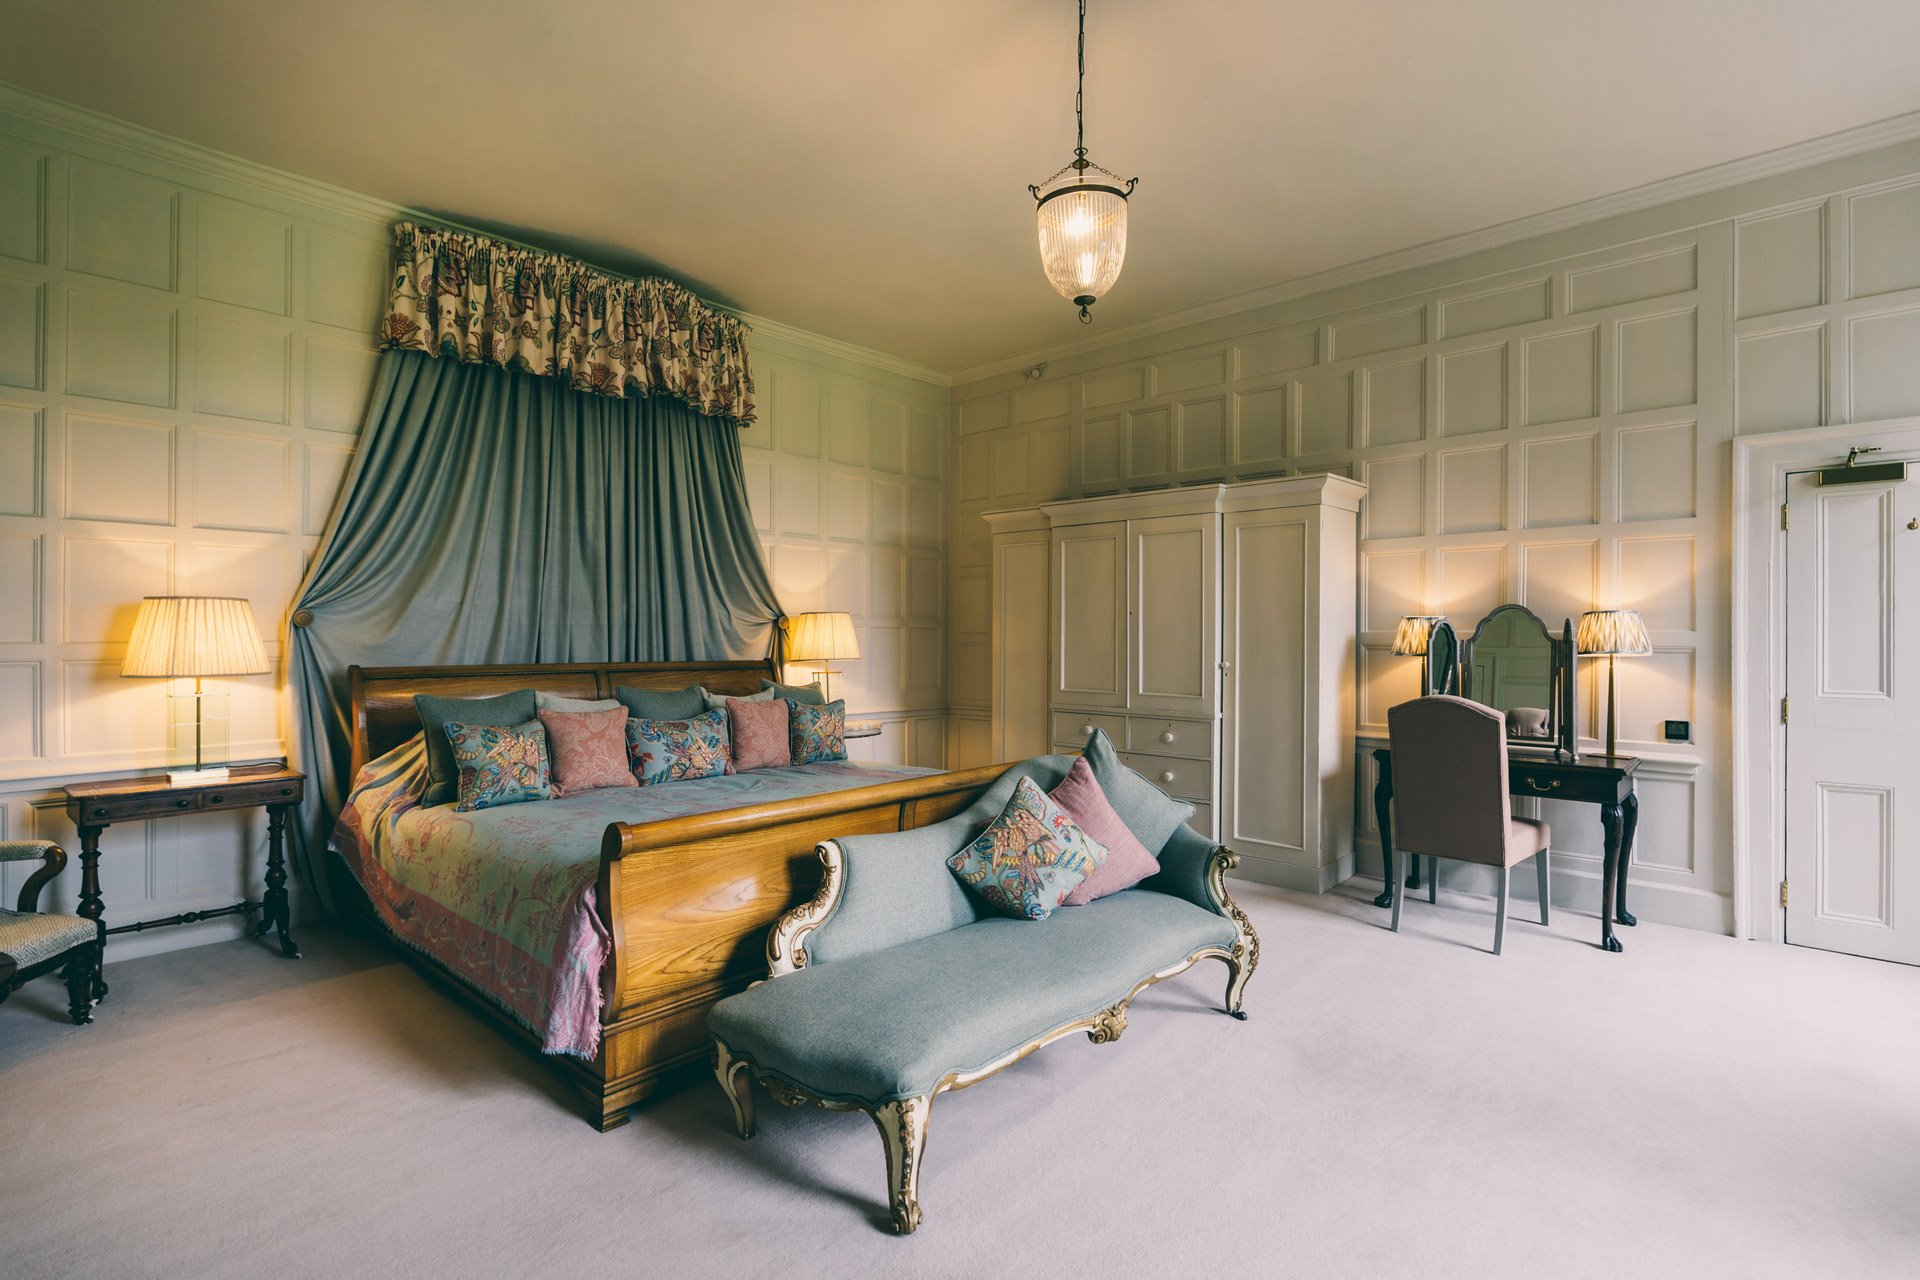 The smoking room white painted panelled room full of light with huge emperor bed could be your bridal suite or guest accommodation